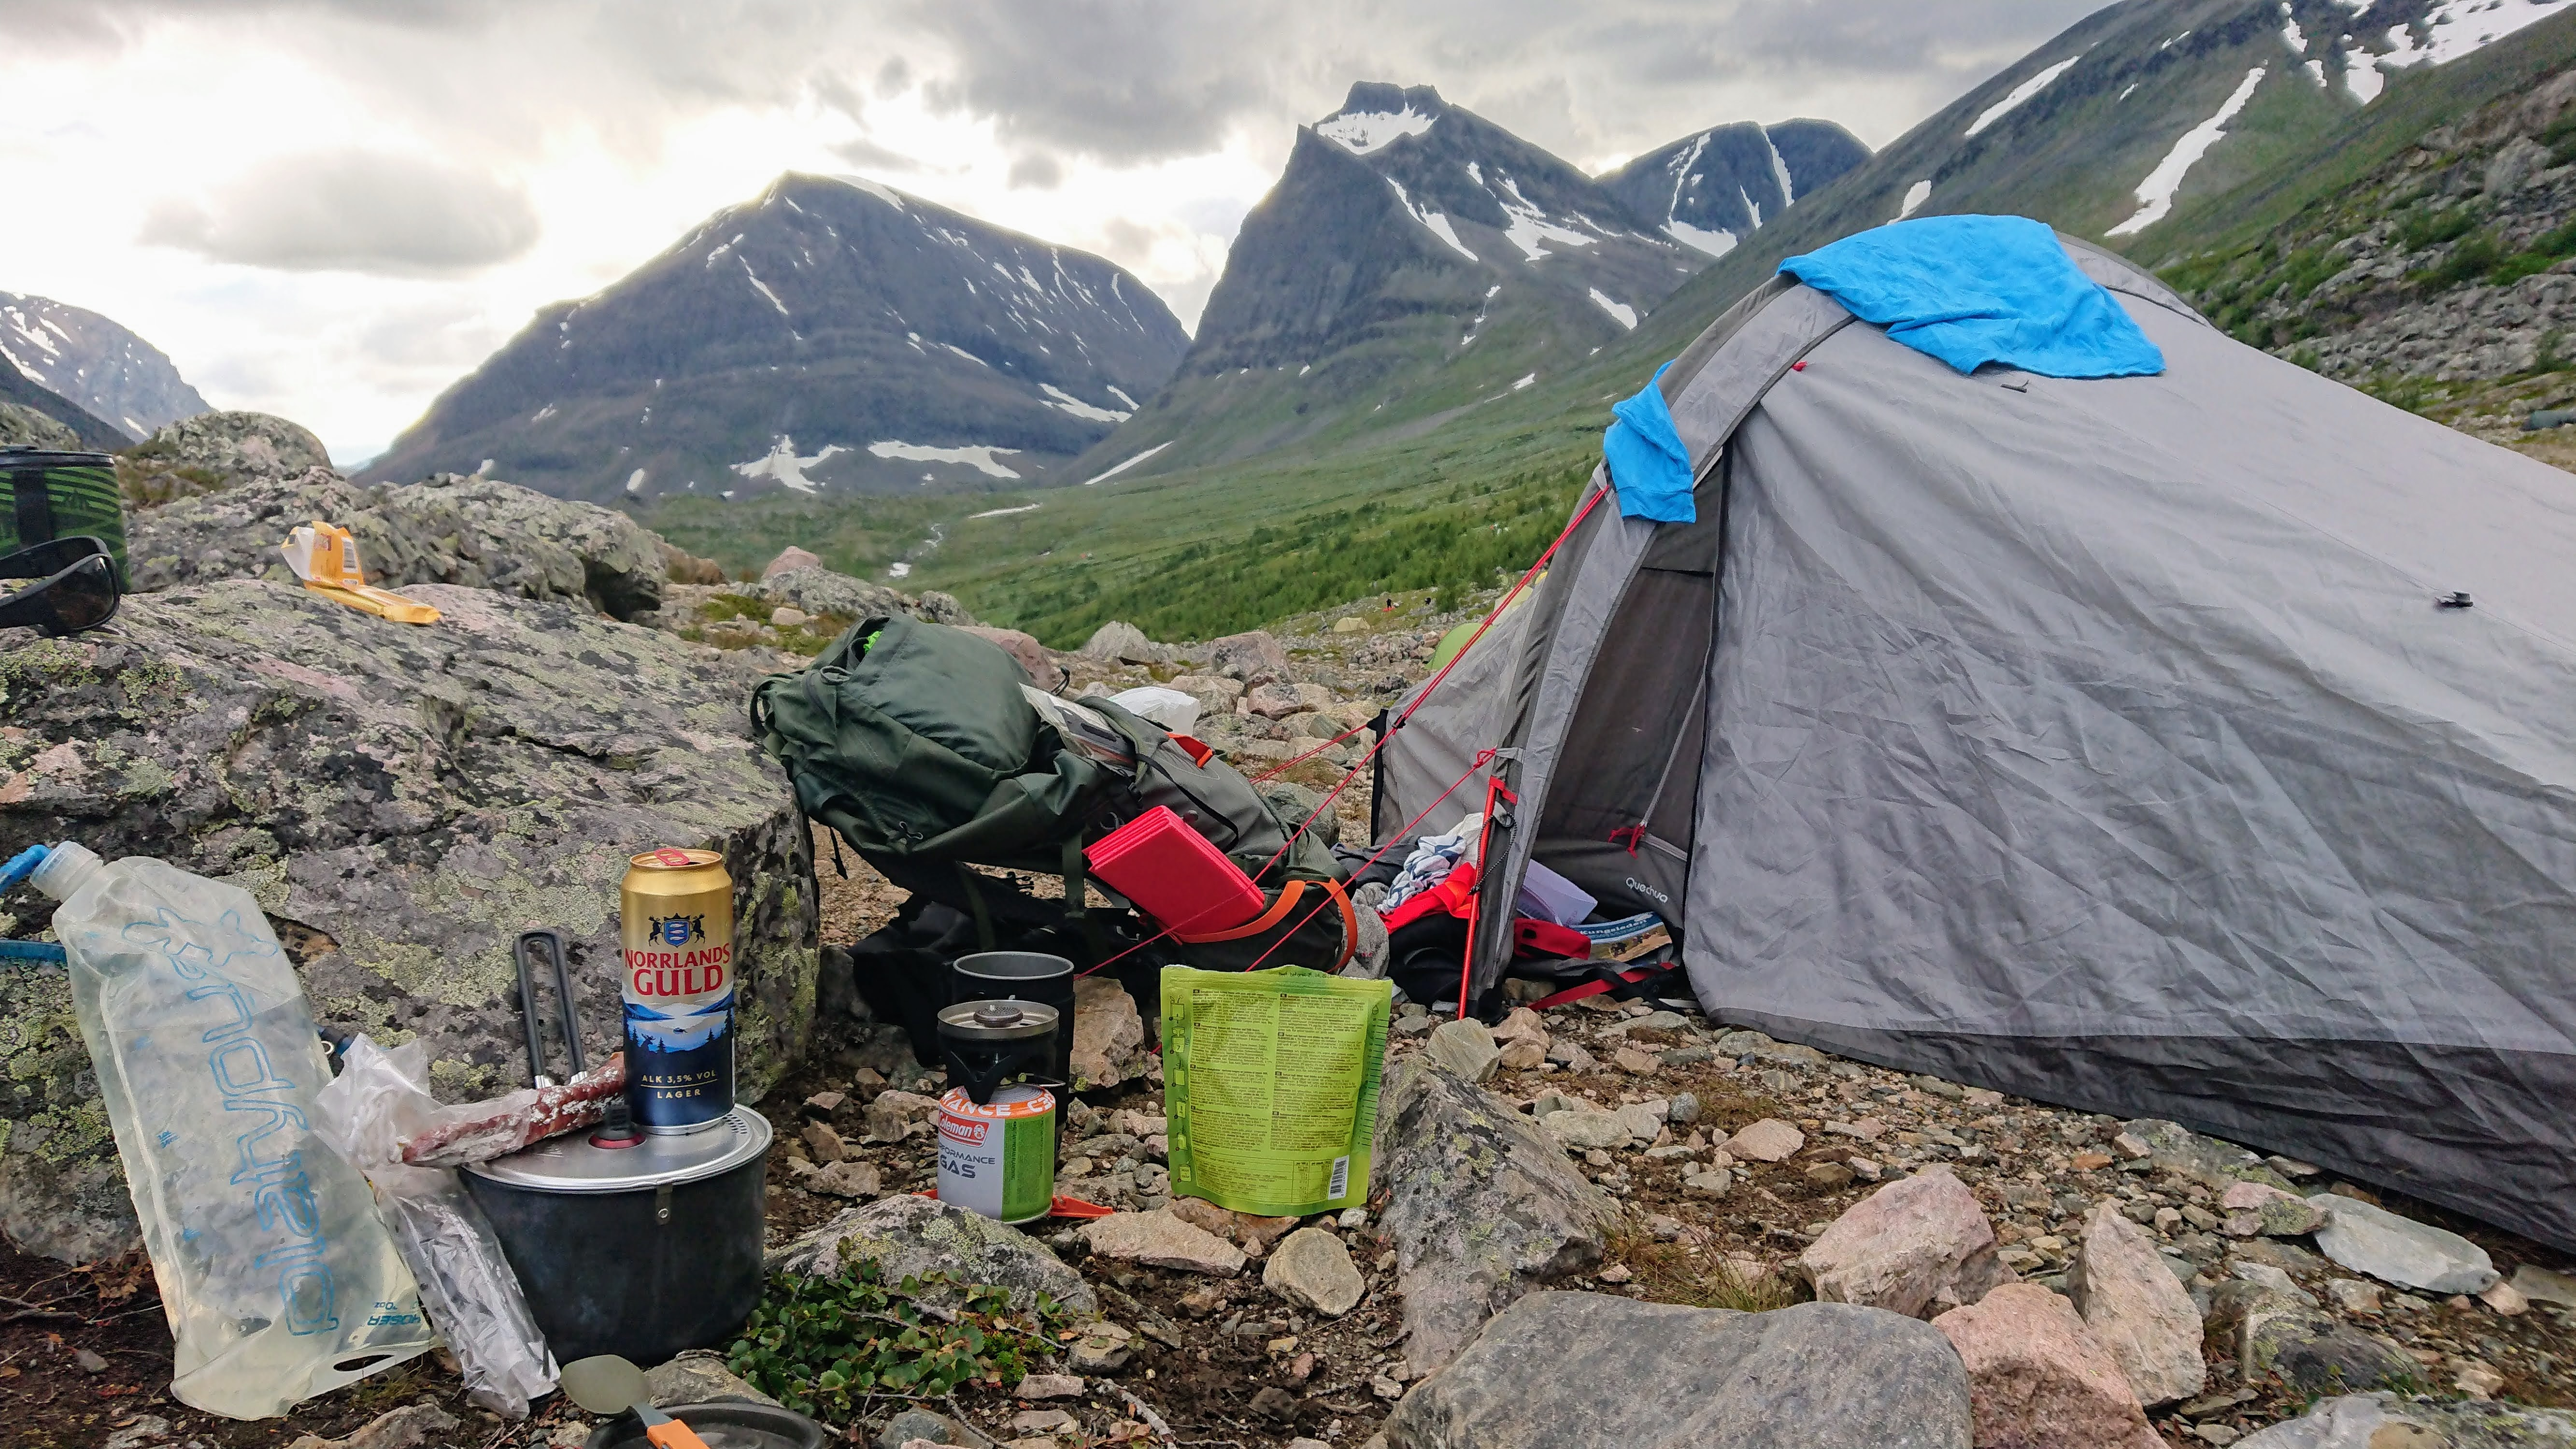 Tent pitch at Kebnekaise station